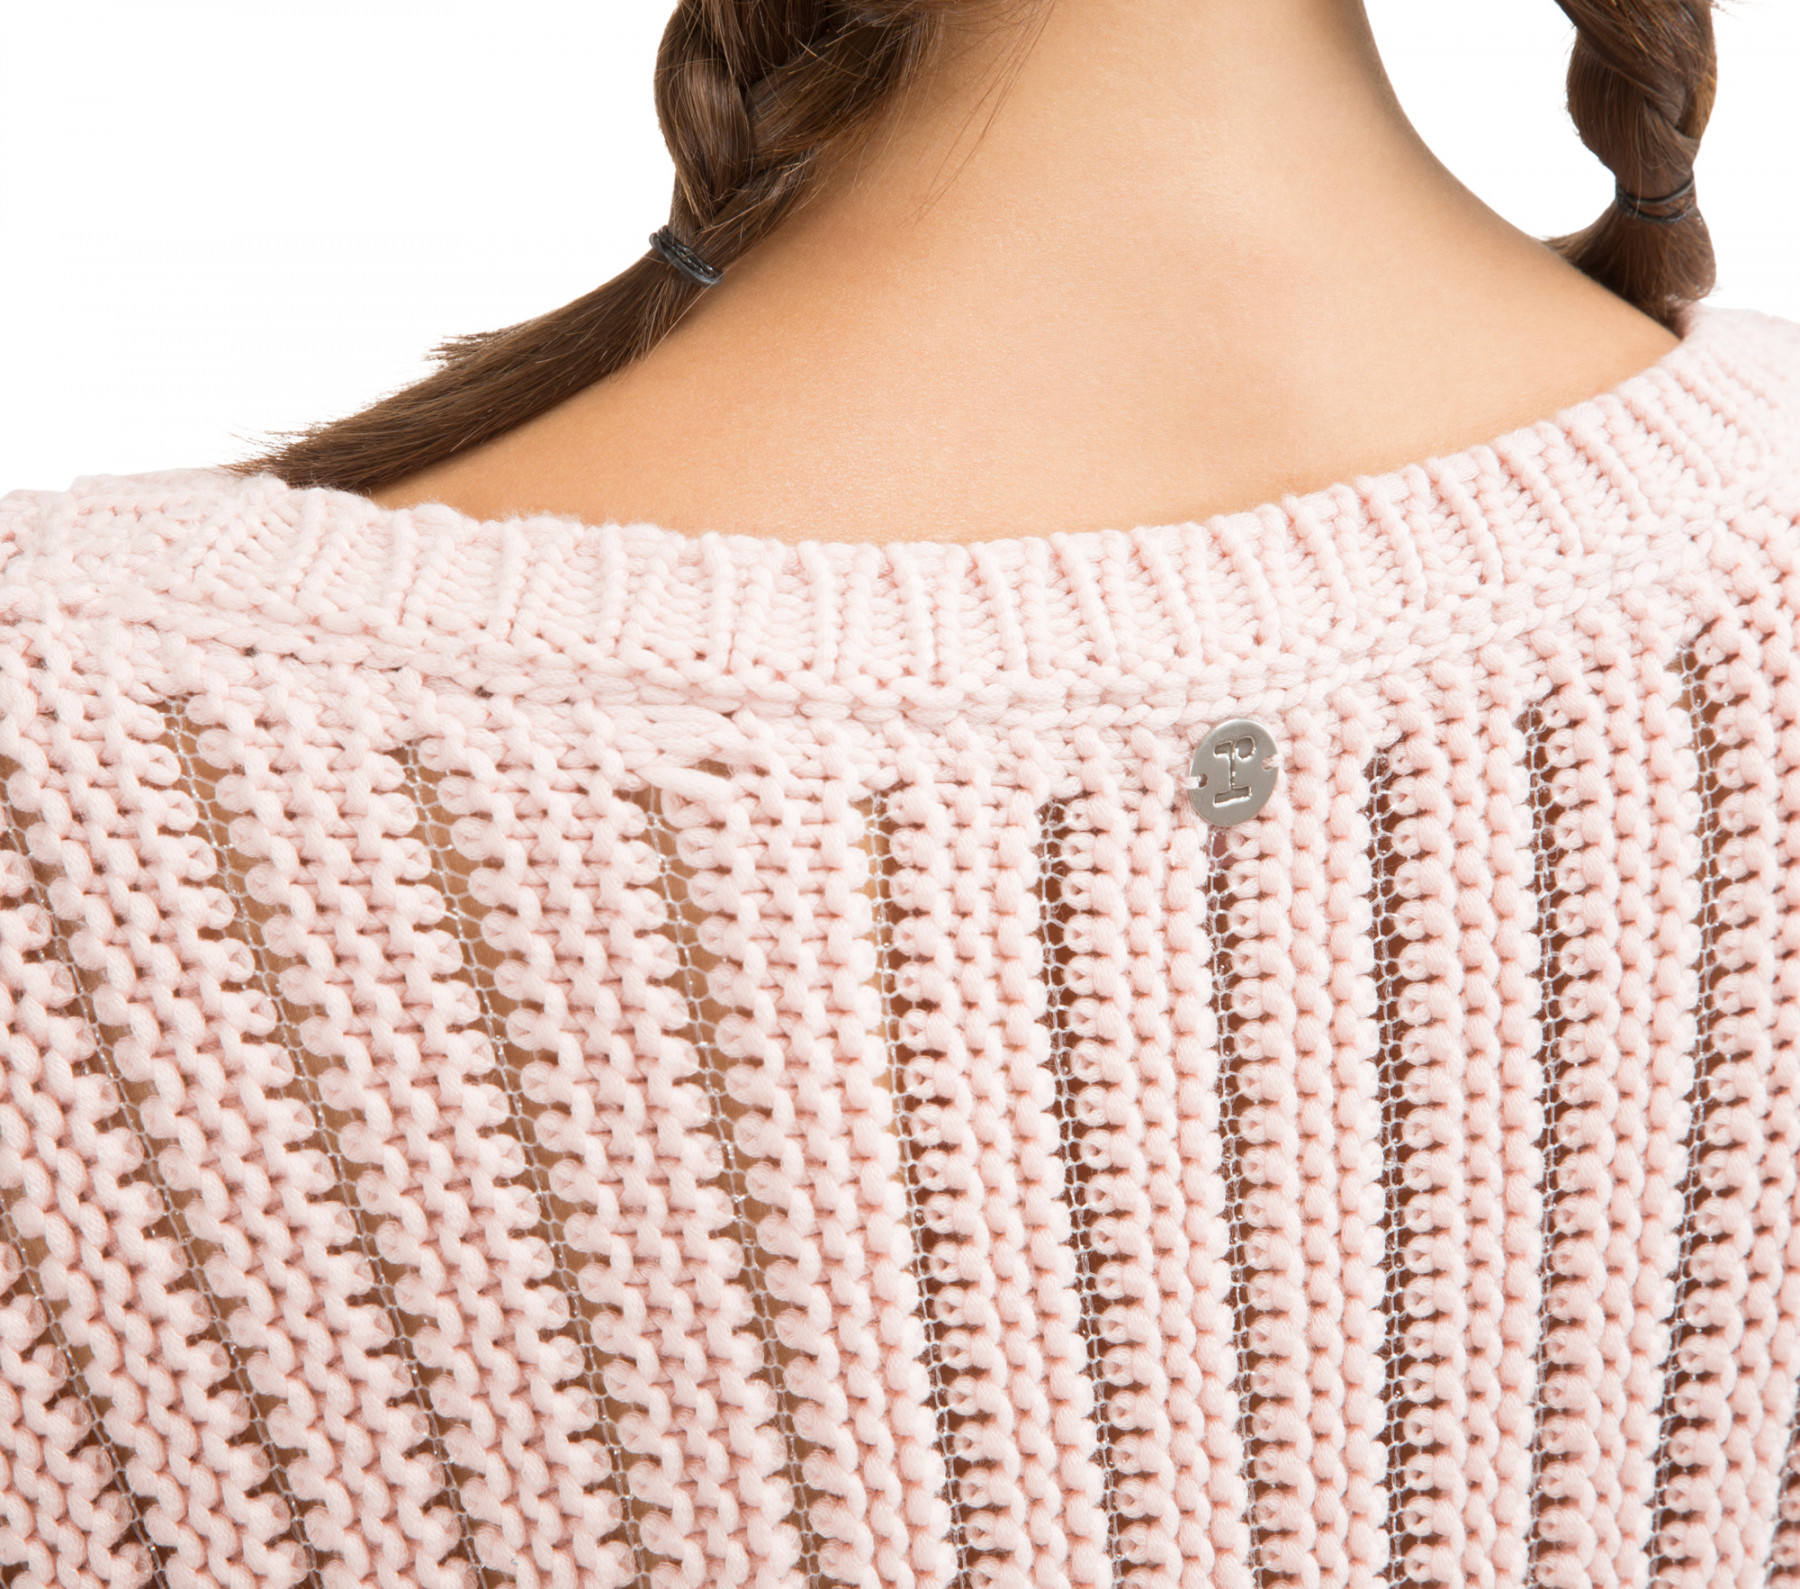 Fancy 3D knit sweater